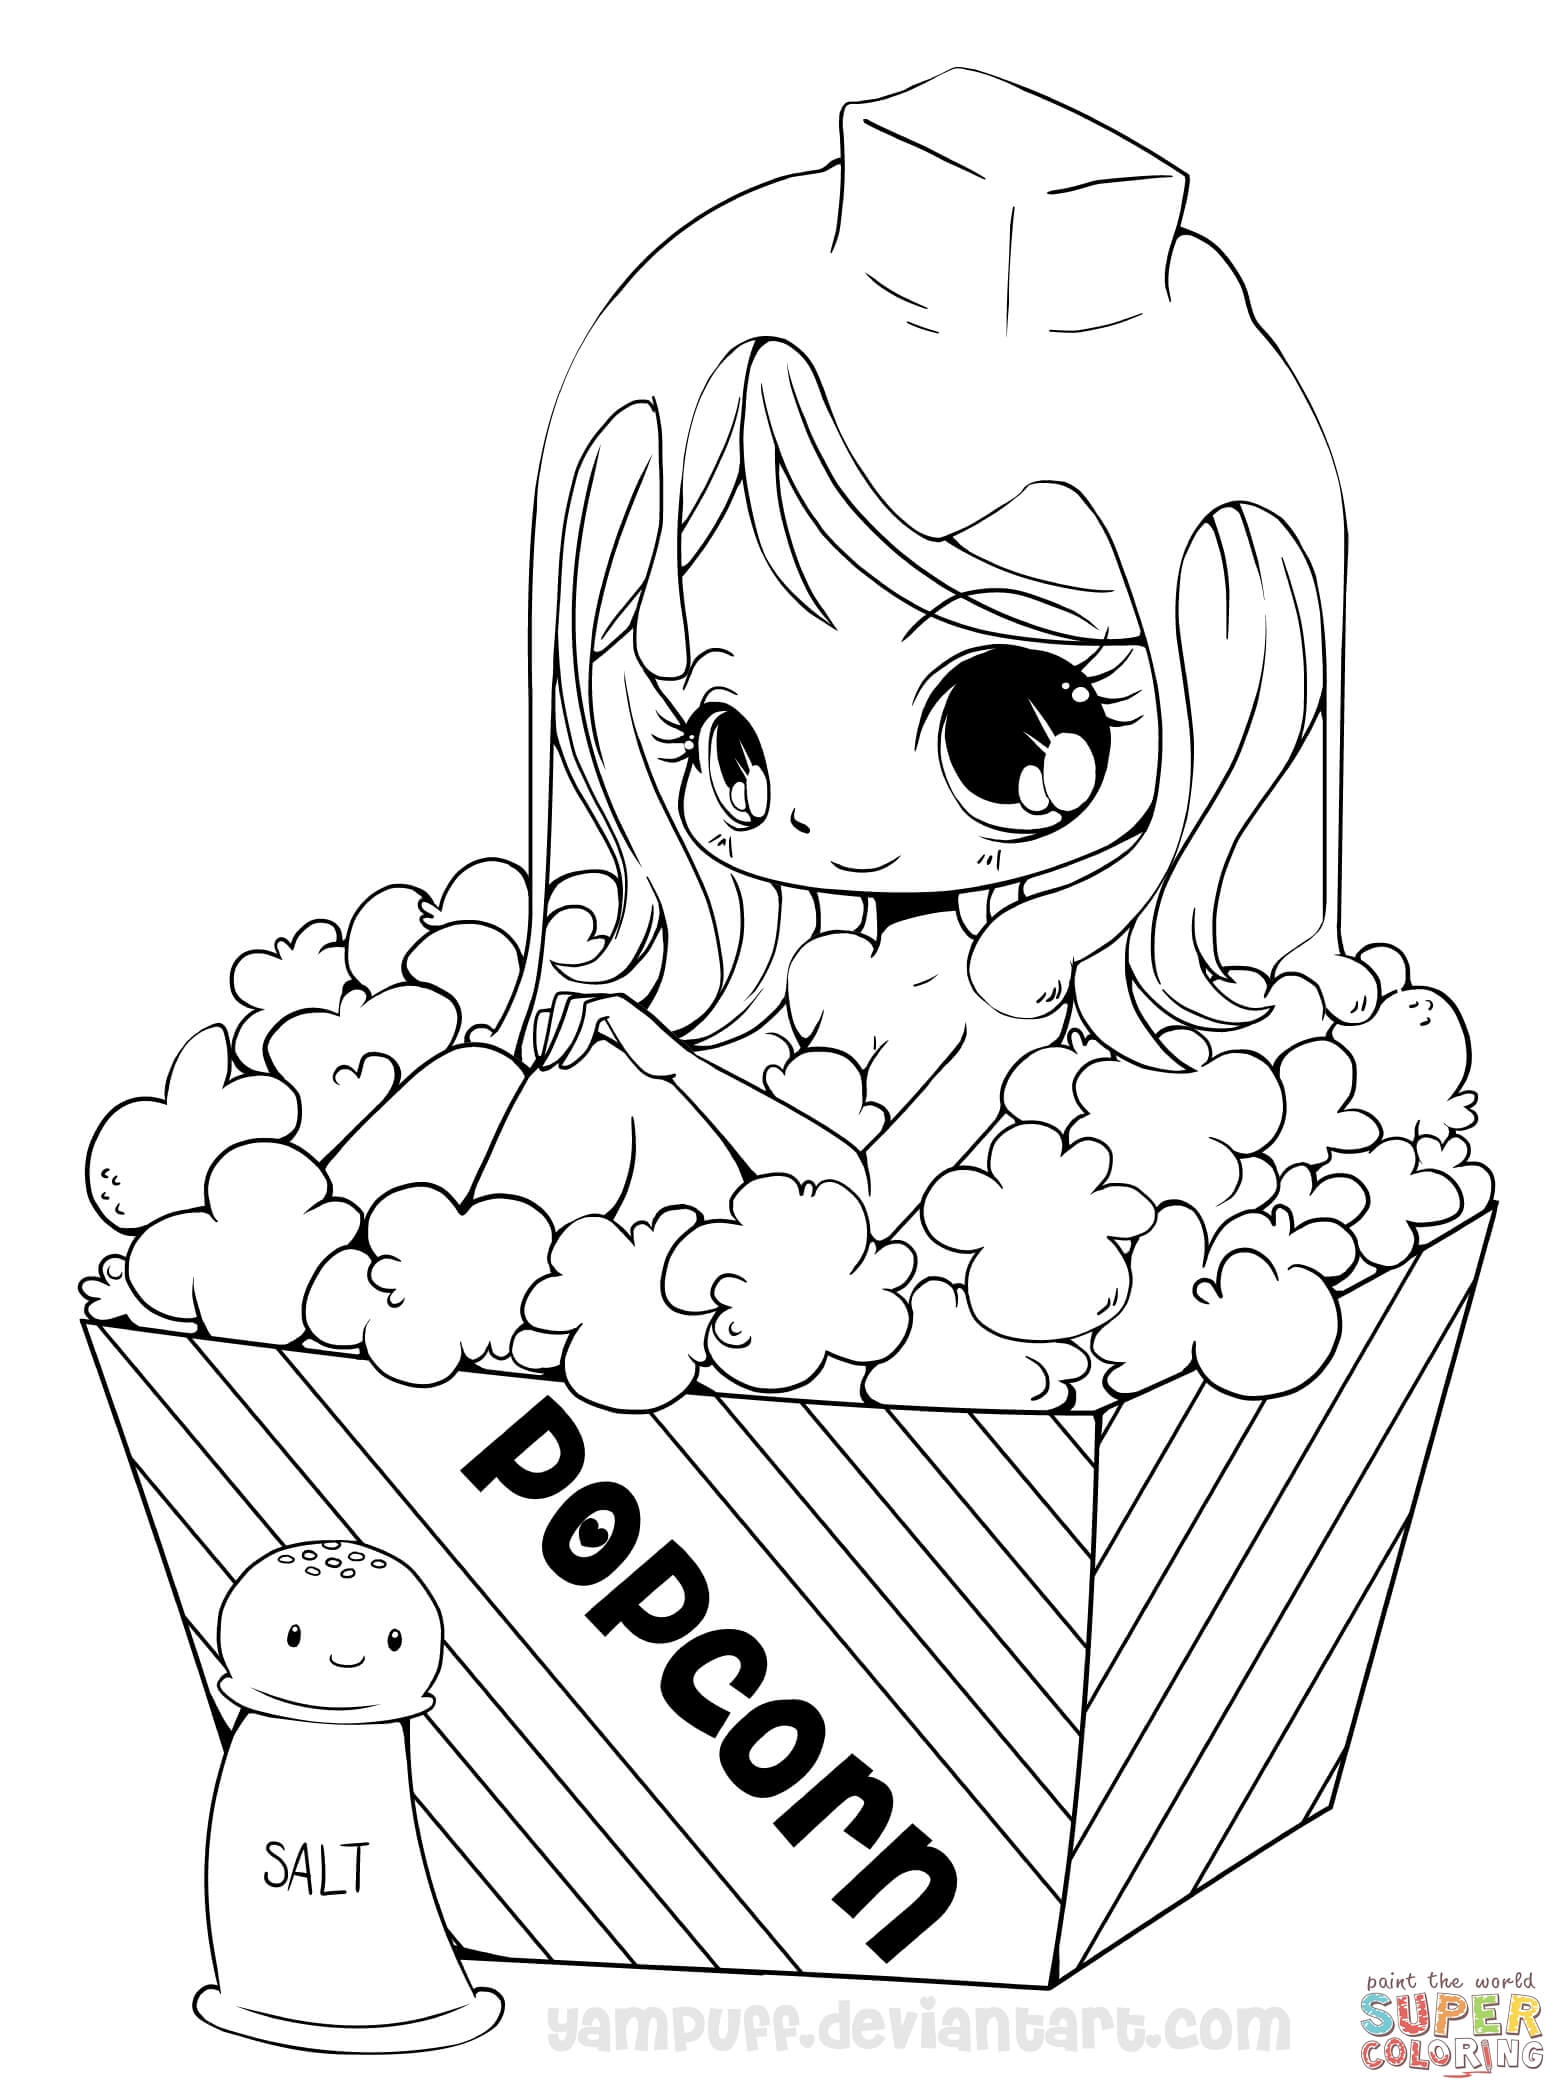 coloring pages for girls cat free printable cat coloring pages for kids girls pages coloring cat for